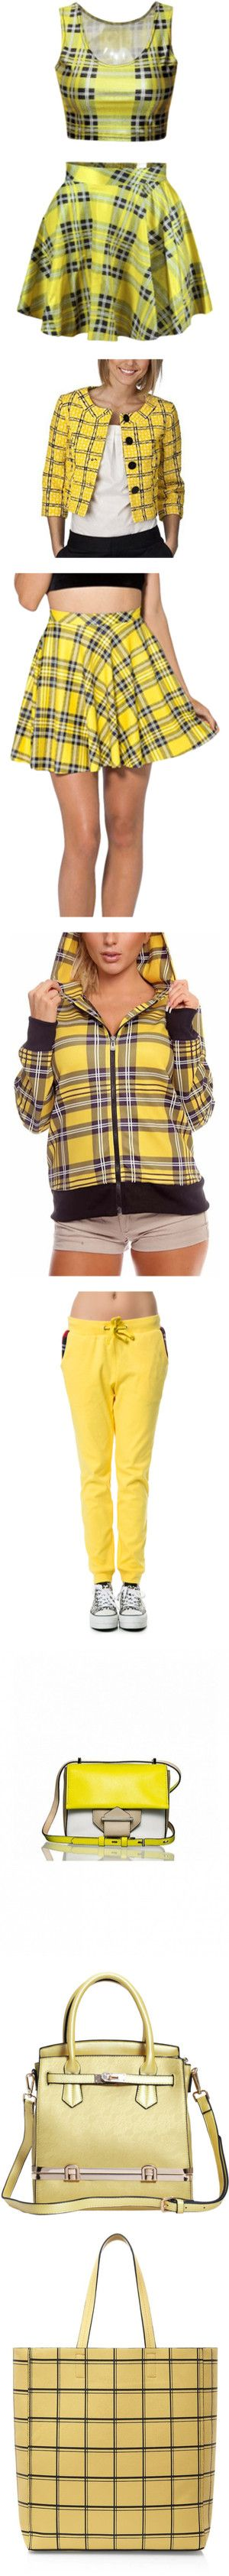 Clueless Yellow Plaid by alypusateri on Polyvore featuring women's fashion, skirts, yellow, vintage pleated skirt, yellow skirt, tartan plaid skirt, yellow tartan skirt, yellow knee length skirt, tops and hoodies